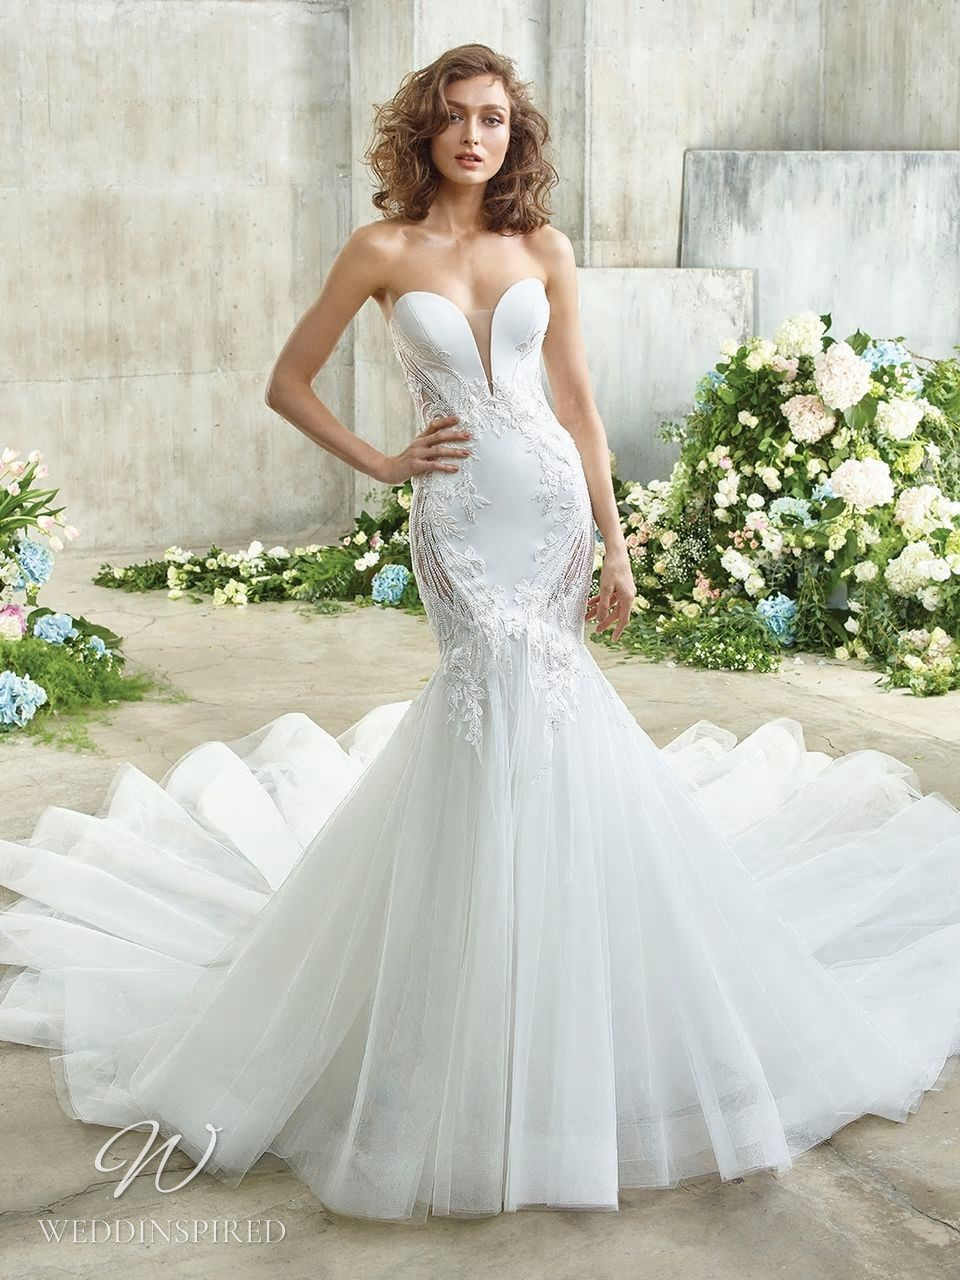 A Badgley Mischka mermaid wedding dress with a tulle skirt, embroidery and a sweetheart neckline